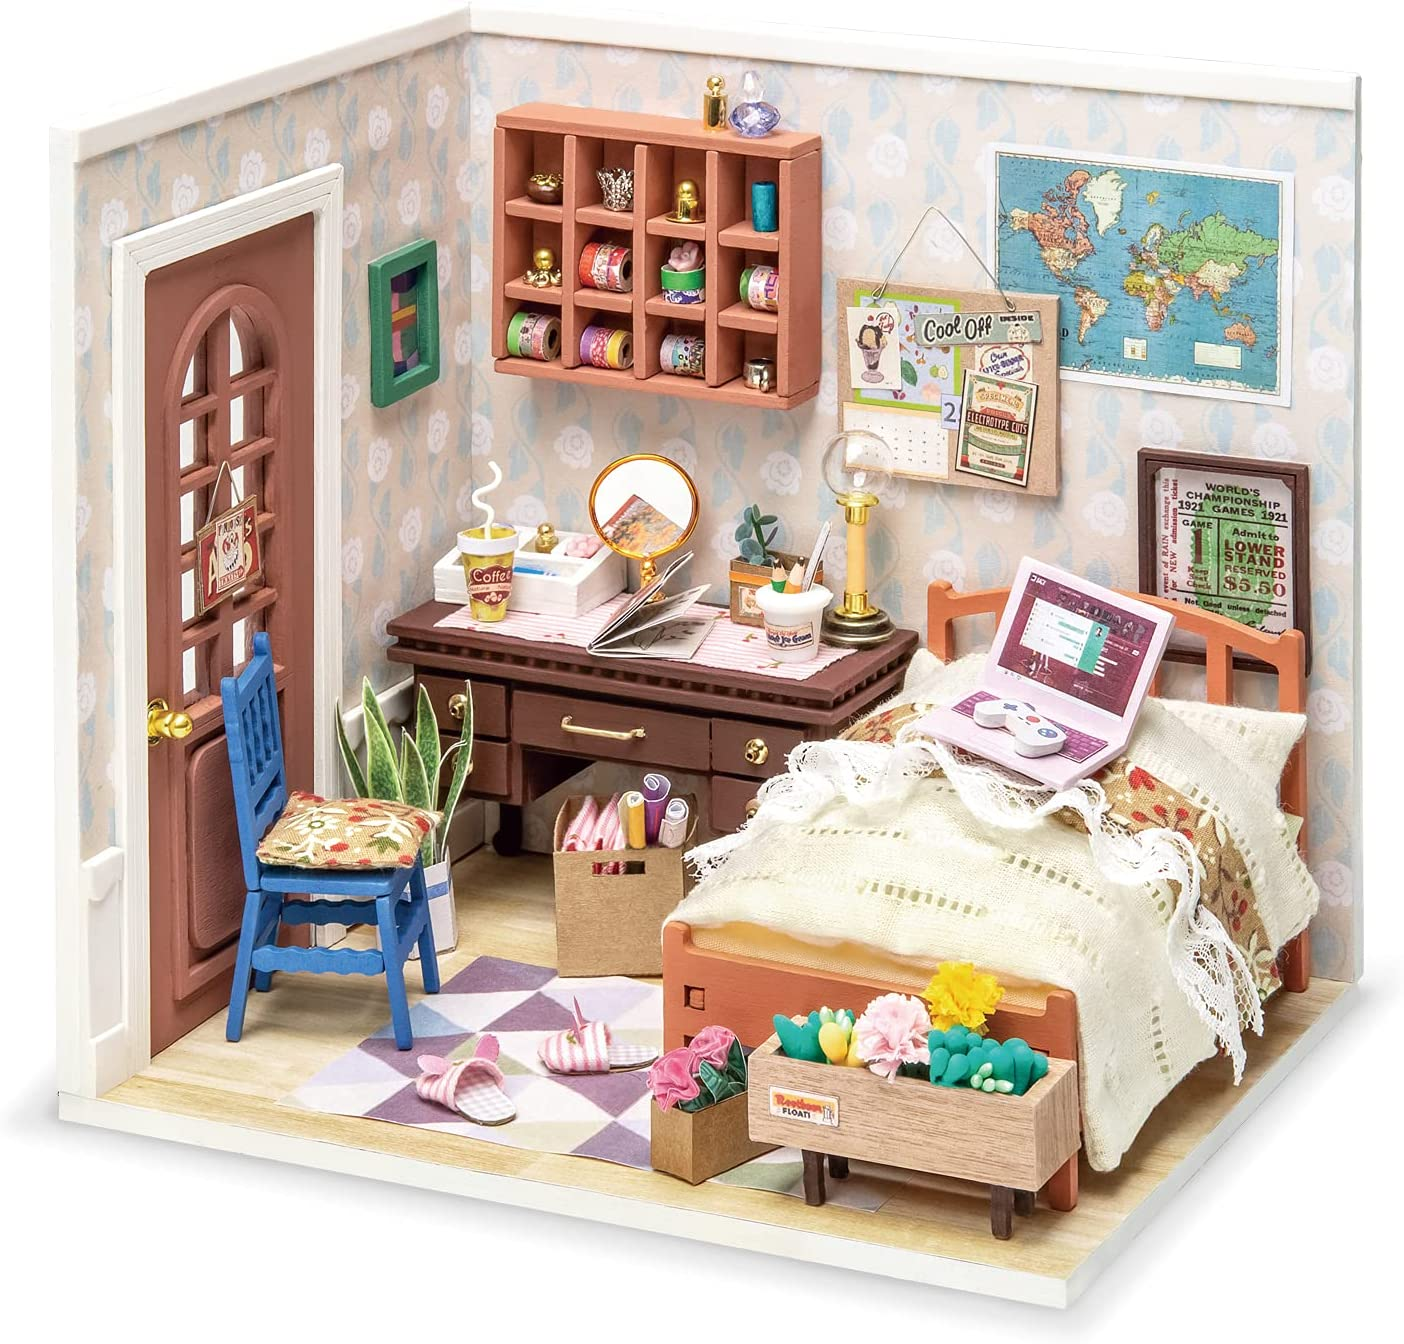 Rolife Miniature DIY Miniature Dollhouse with Furniture Set with LED,Tiny Building House Kit,Wooden Greenhouse Kits,Best Gift for Kids(Anne's Bedroom)